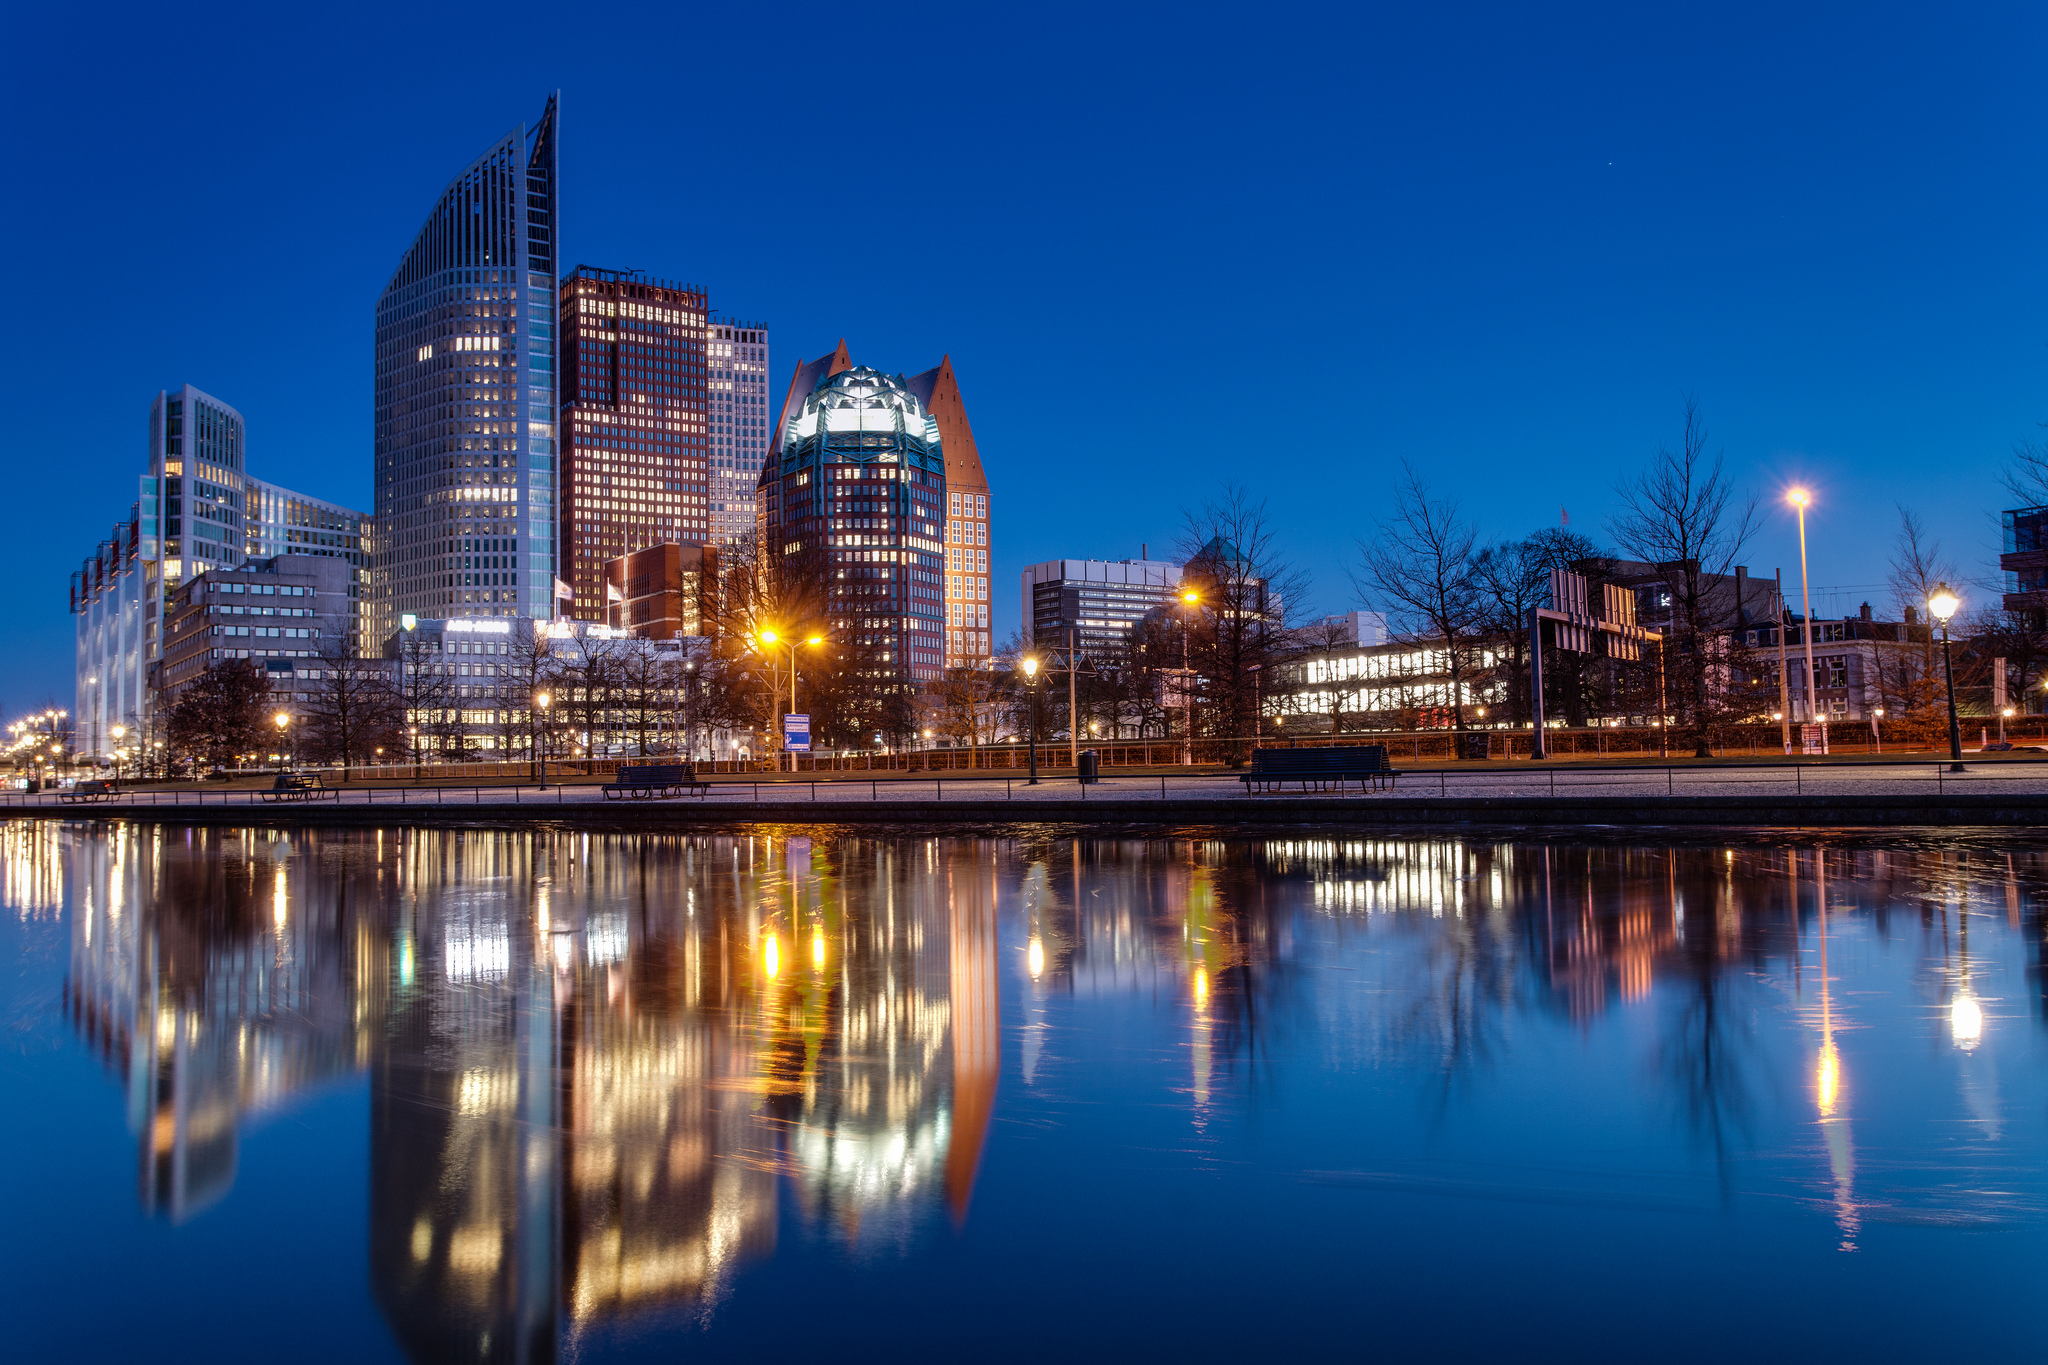 The Hague   City in Netherlands   Thousand Wonders